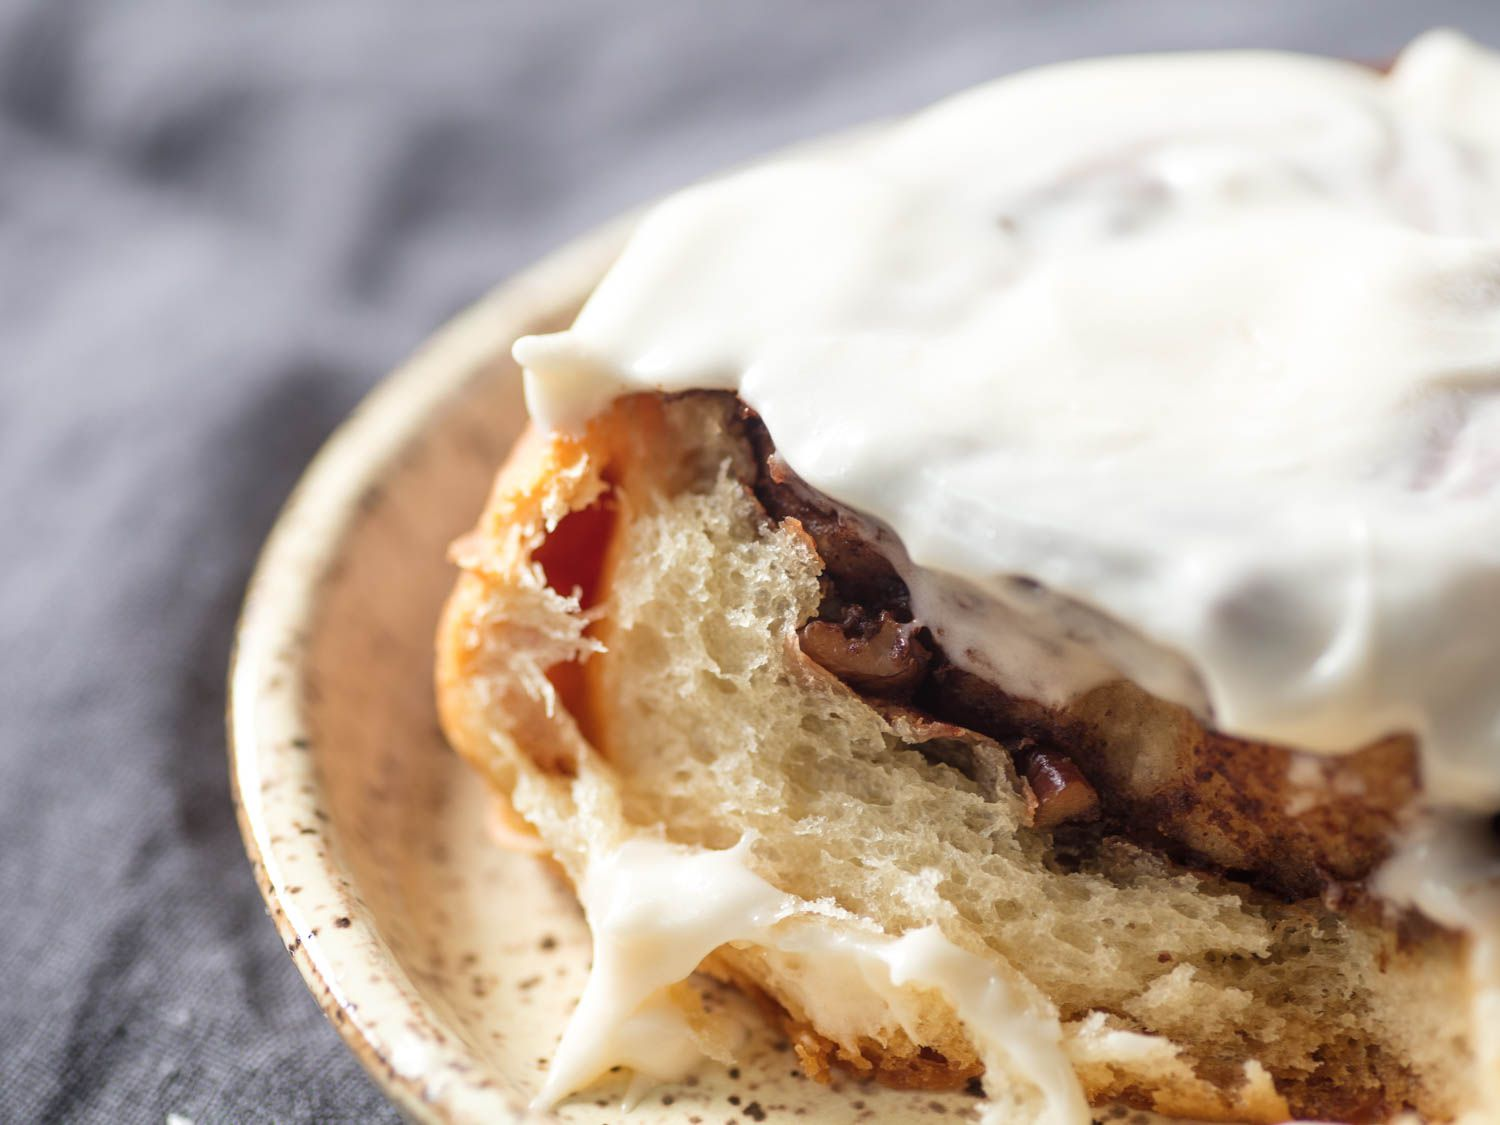 Close-up of the interior of a cinnamon roll frosted with cream cheese icing.